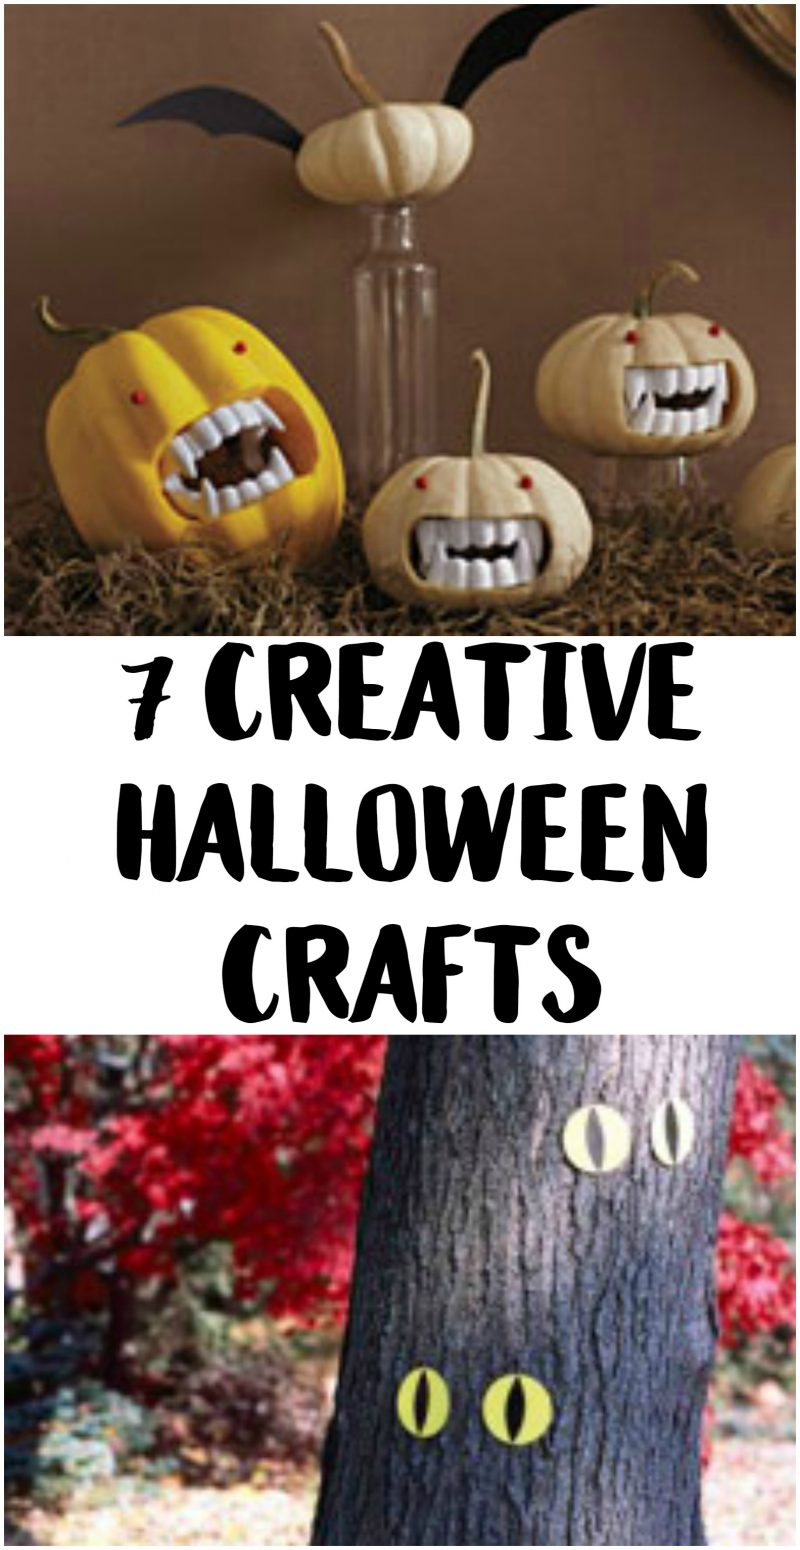 Halloween crafts aren't just for kids! These DIY decorations ideas are for adults- but still easy enough to let your kids help, too! They're creative {there's more than just pumpkin decorating} and the perfect way to celebrate the spookiest holiday of fall!